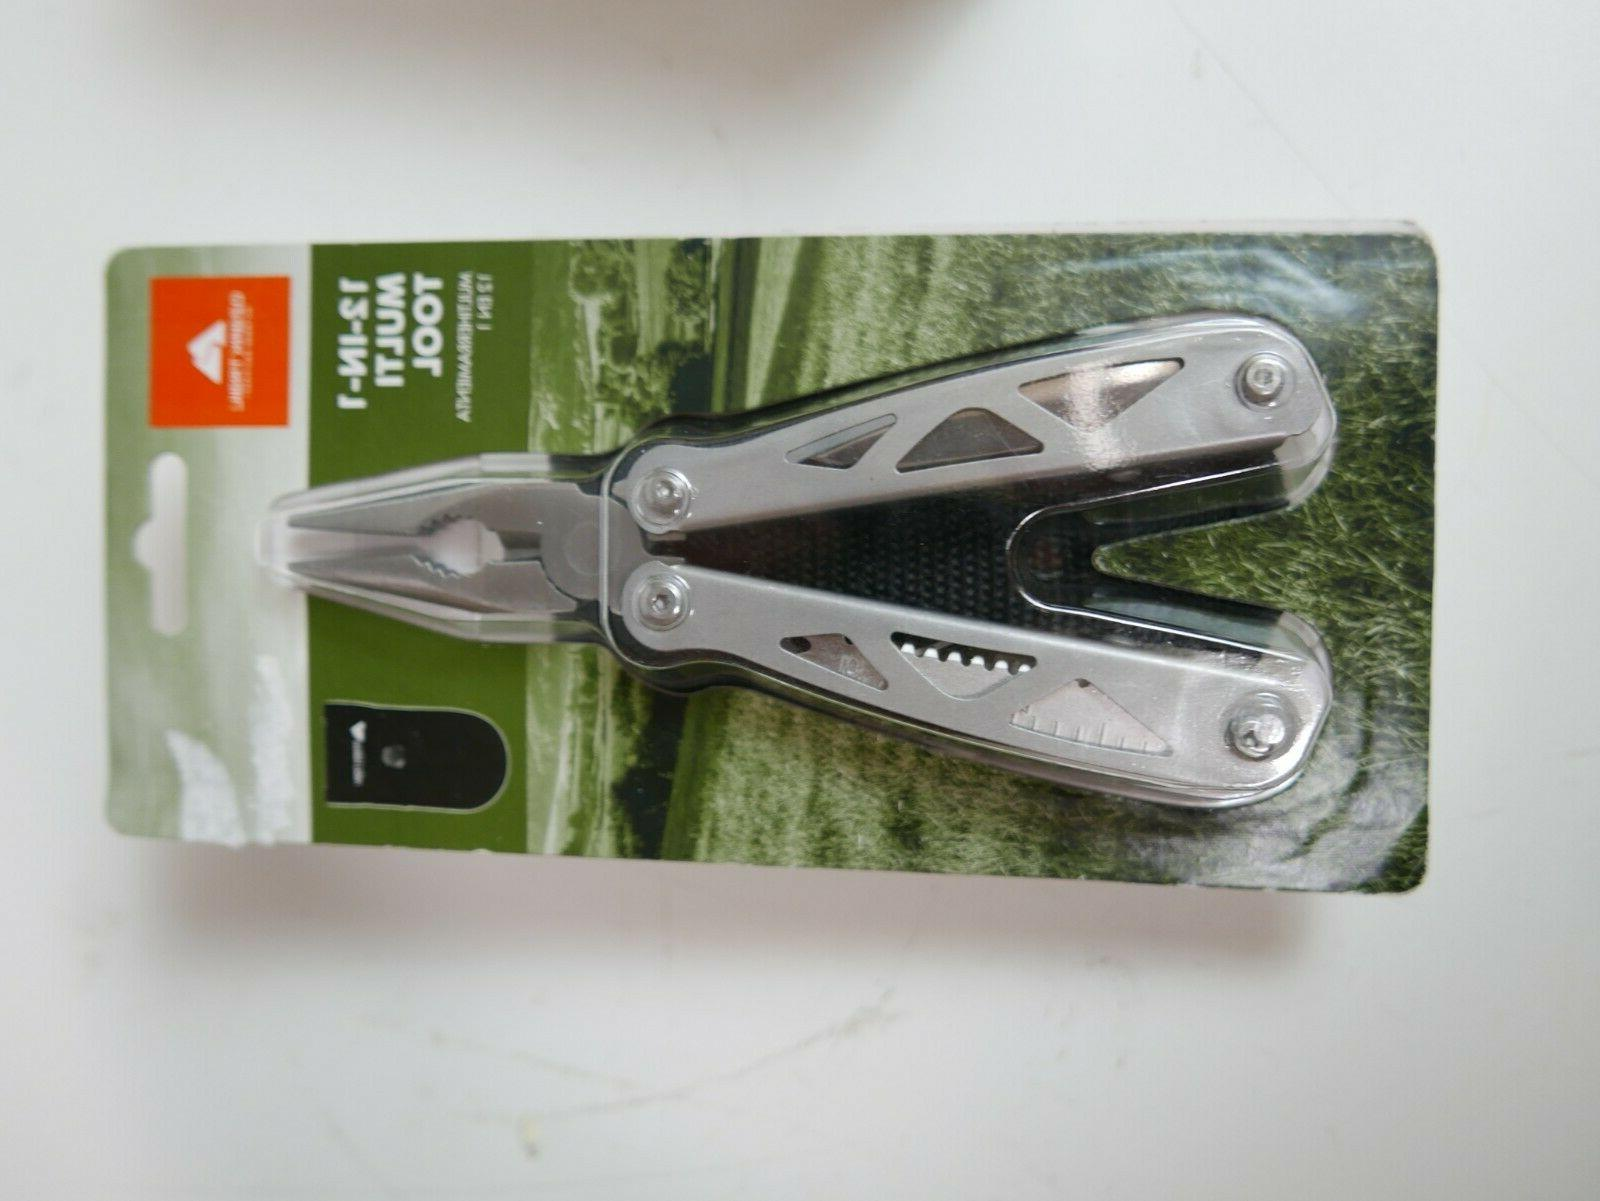 12 in 1 multi tool with nylon